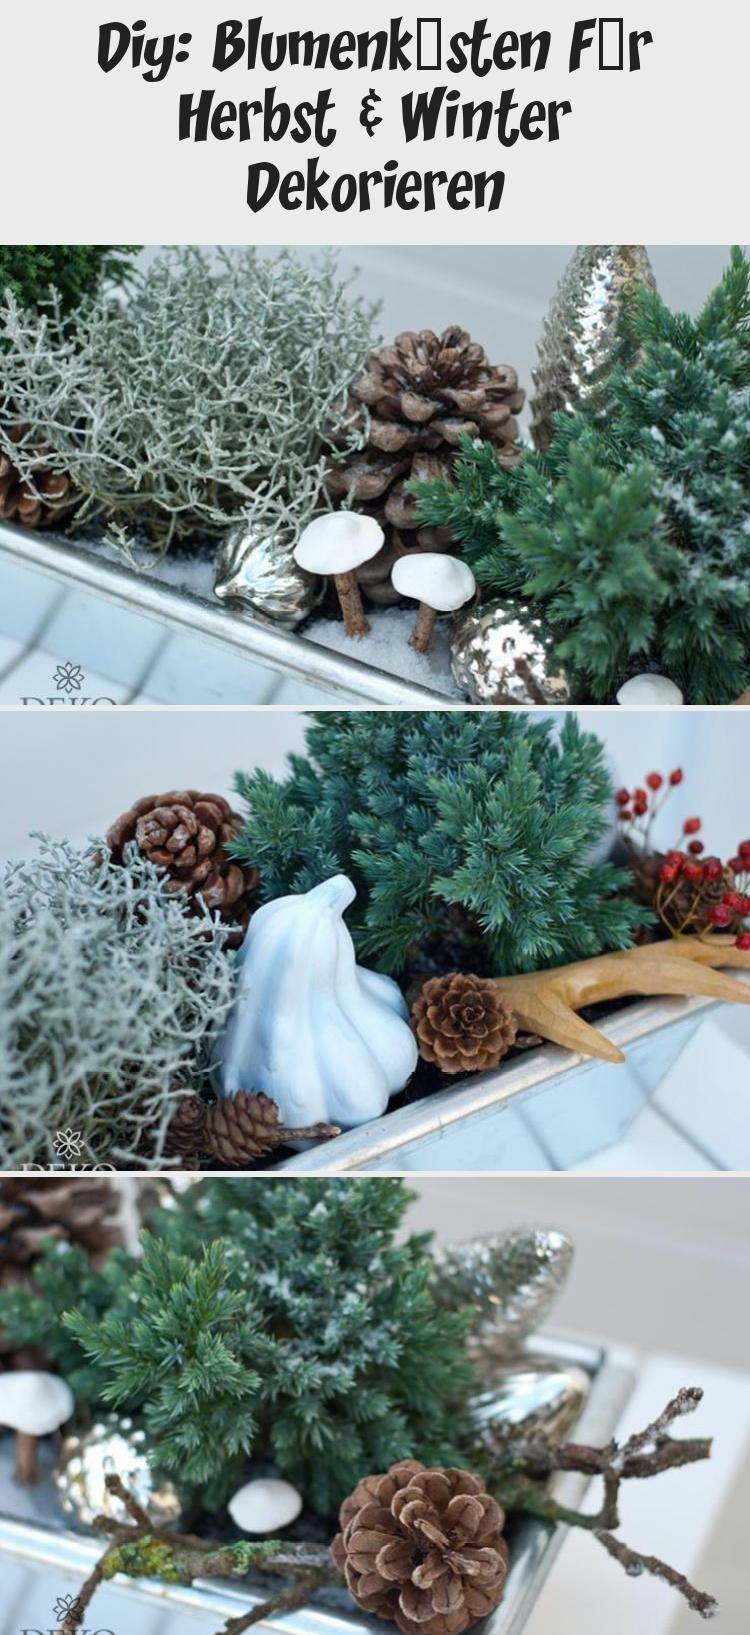 Blumenkasten Dekoration Dekorieren Diy Für Herbst Herbst Dekoration Landhaus Winter Dekorationweihnachtenfenster Christmas Wreaths Holiday Decor Decor